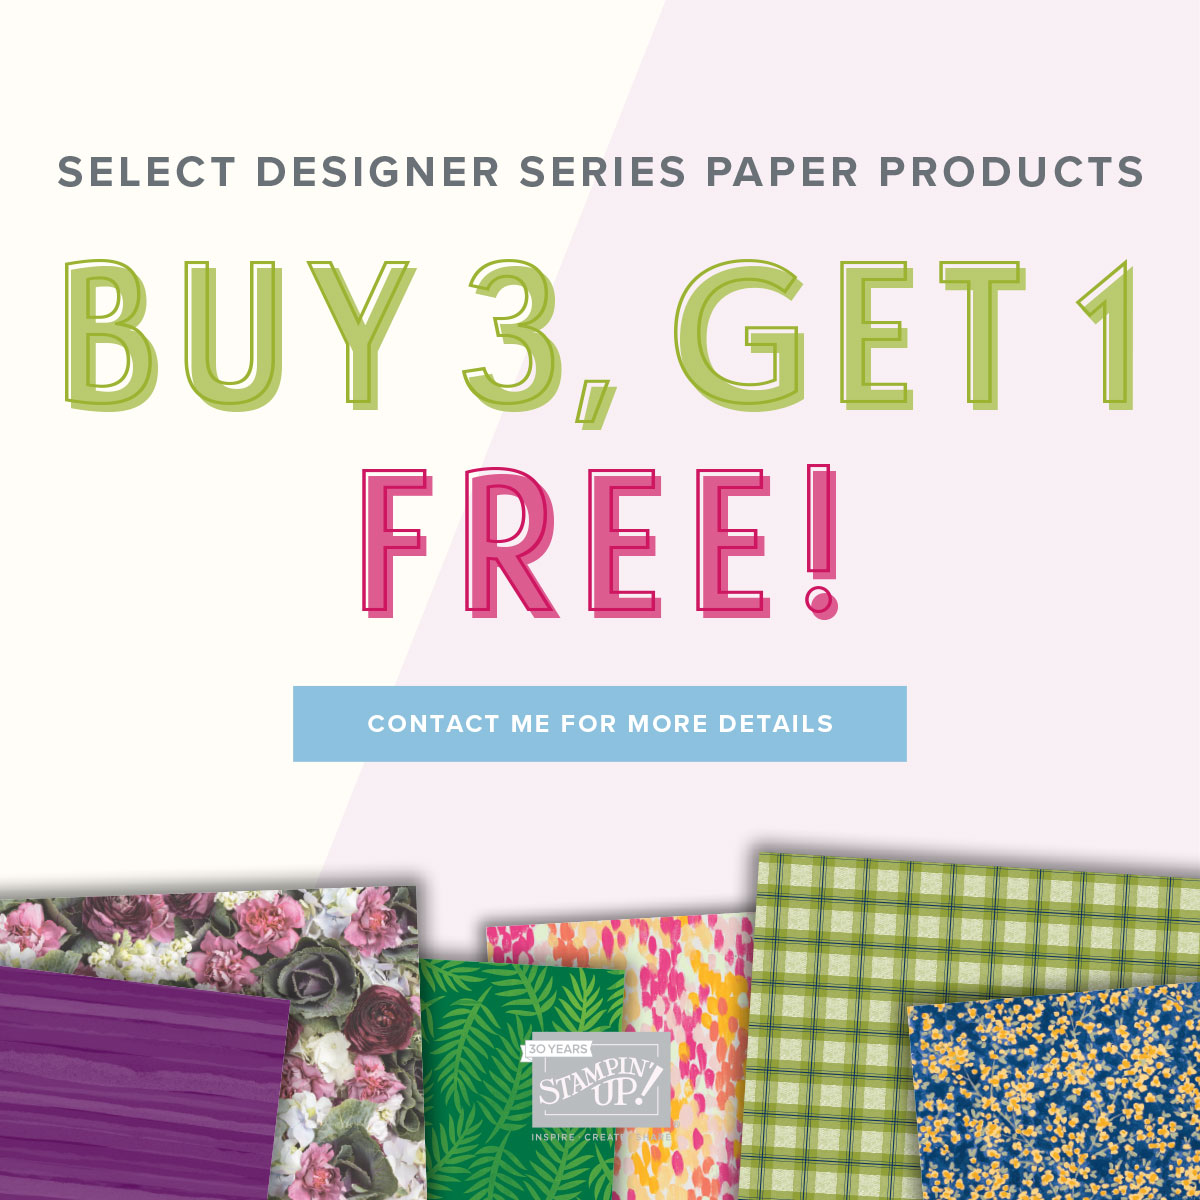 Designer Series Paper Offer!